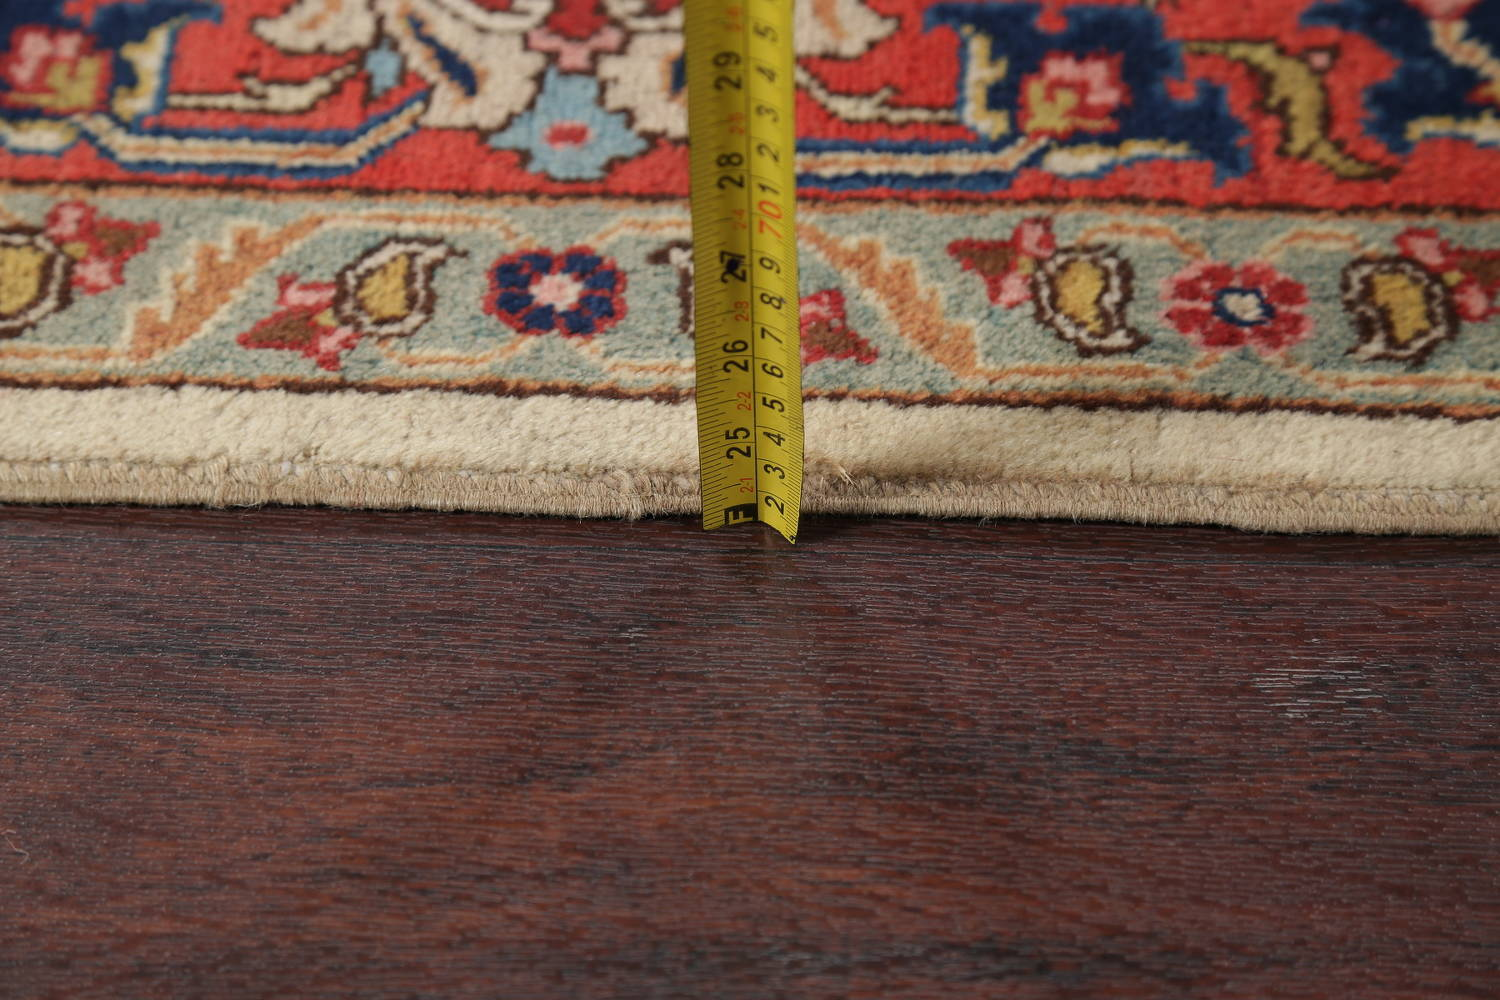 Antique Vegetable Dye Tabriz Persian Hand-Knotted Area Rug Wool 10x13 image 19